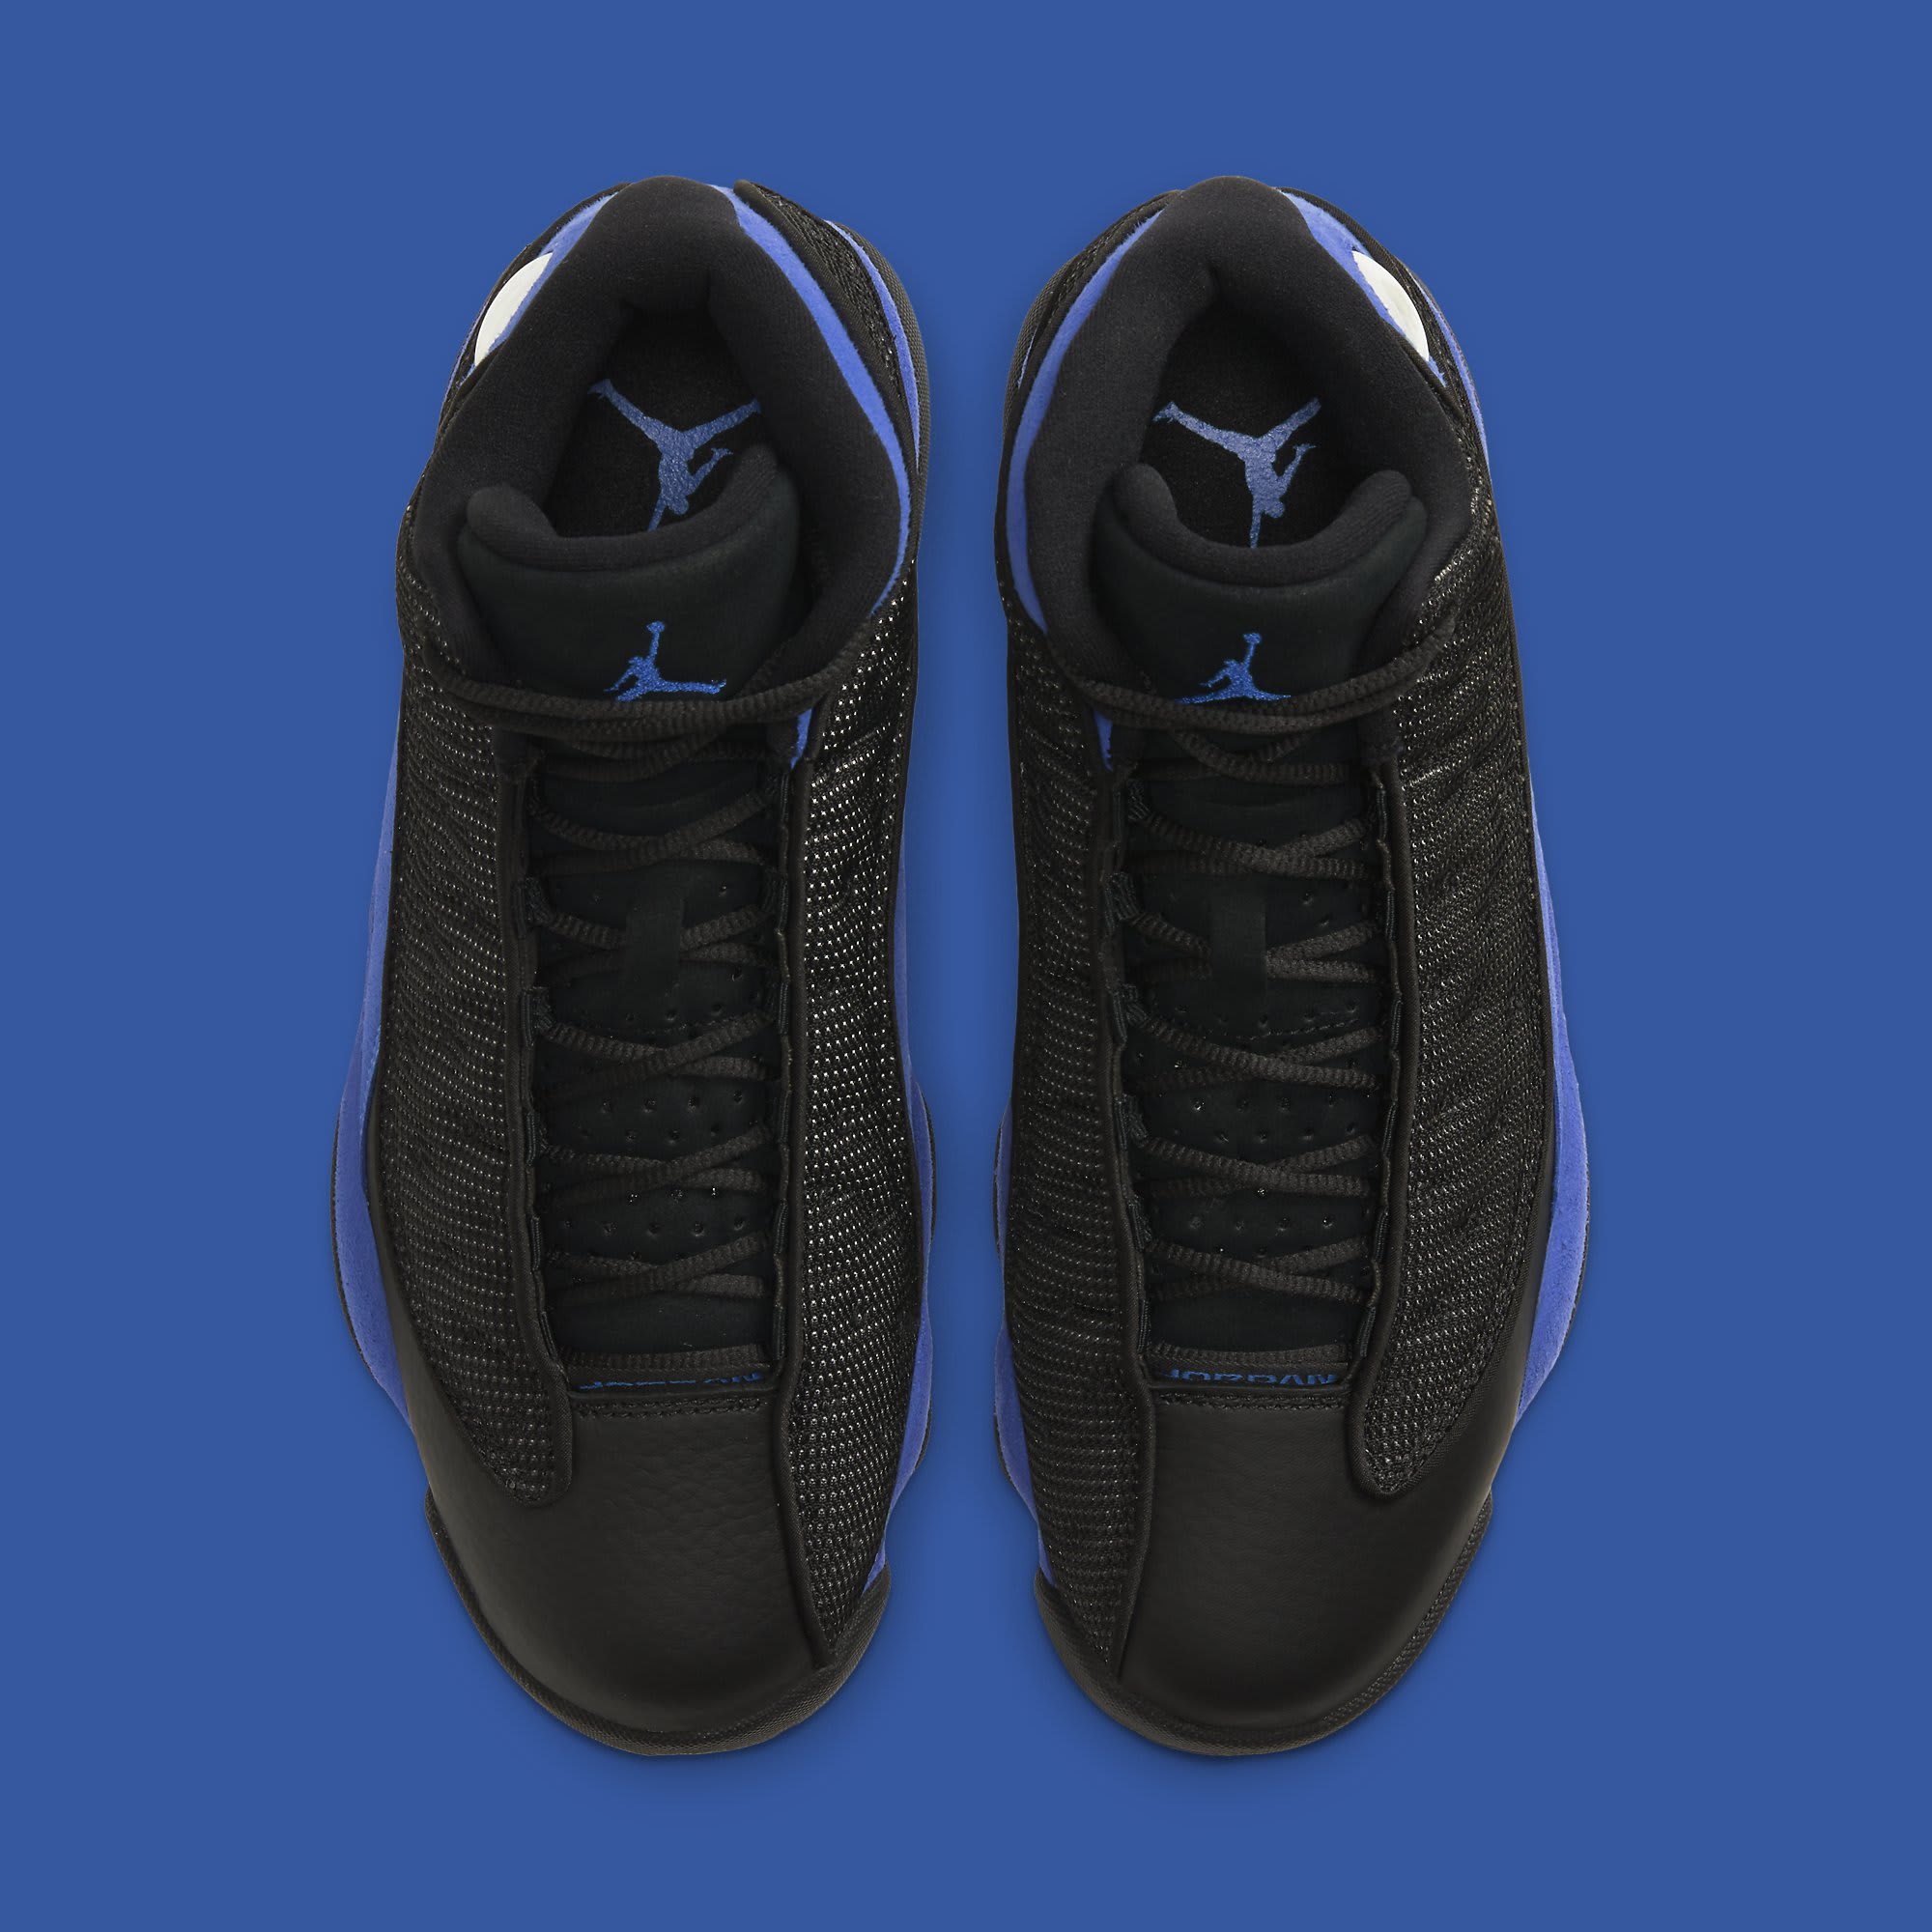 Air Jordan 13 Retro 'Hyper Royal' 414571-040 Top